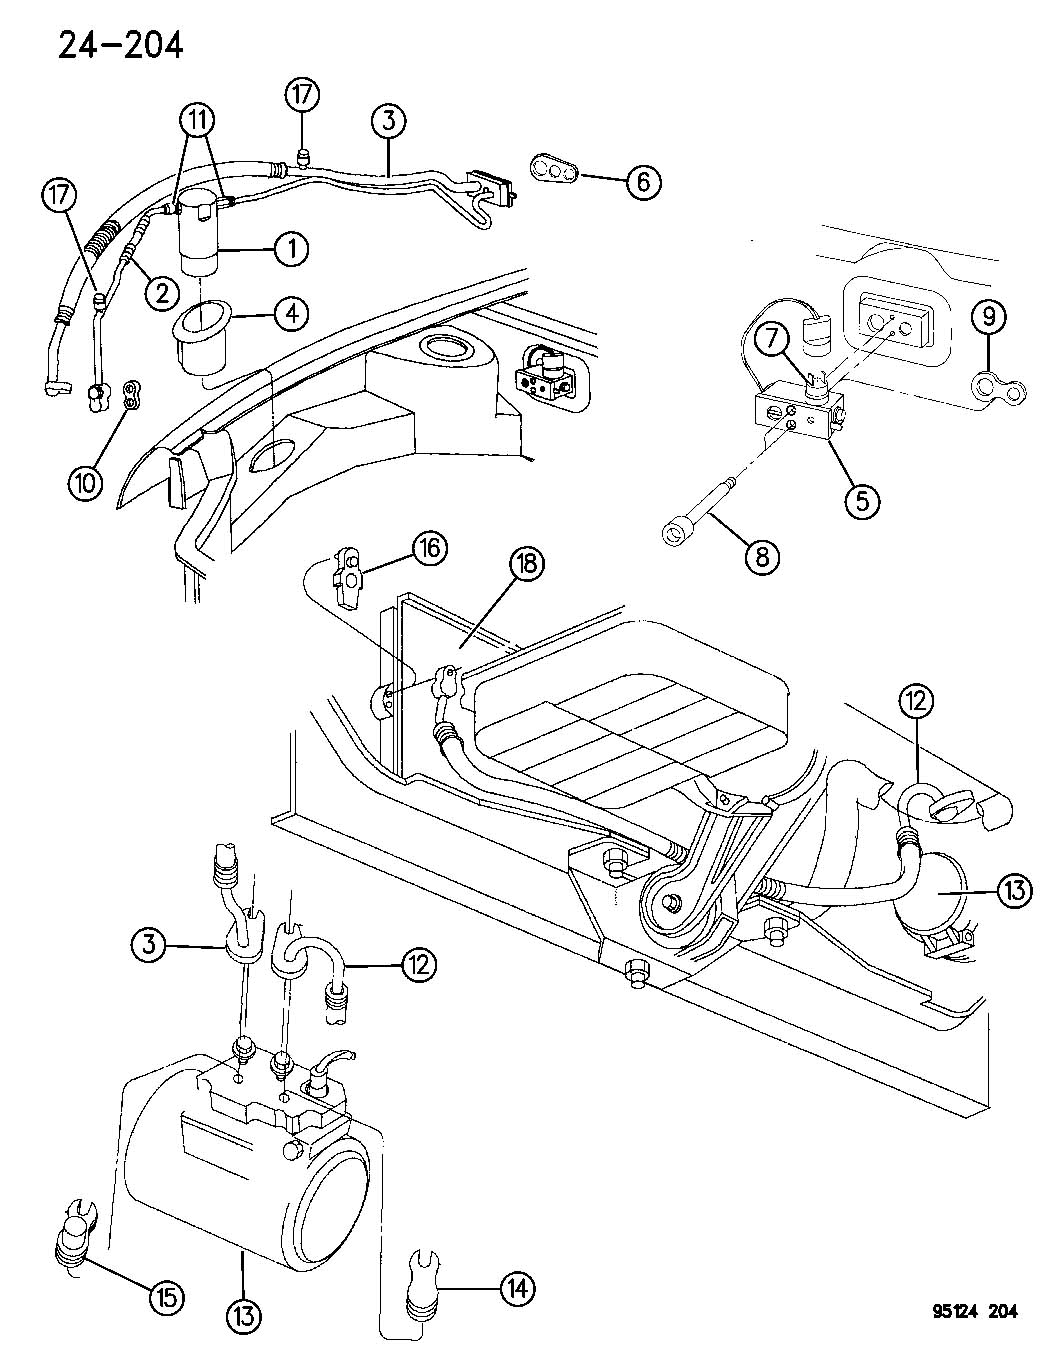 Service Manual Ac Repair Diagram Chrysler Concorde